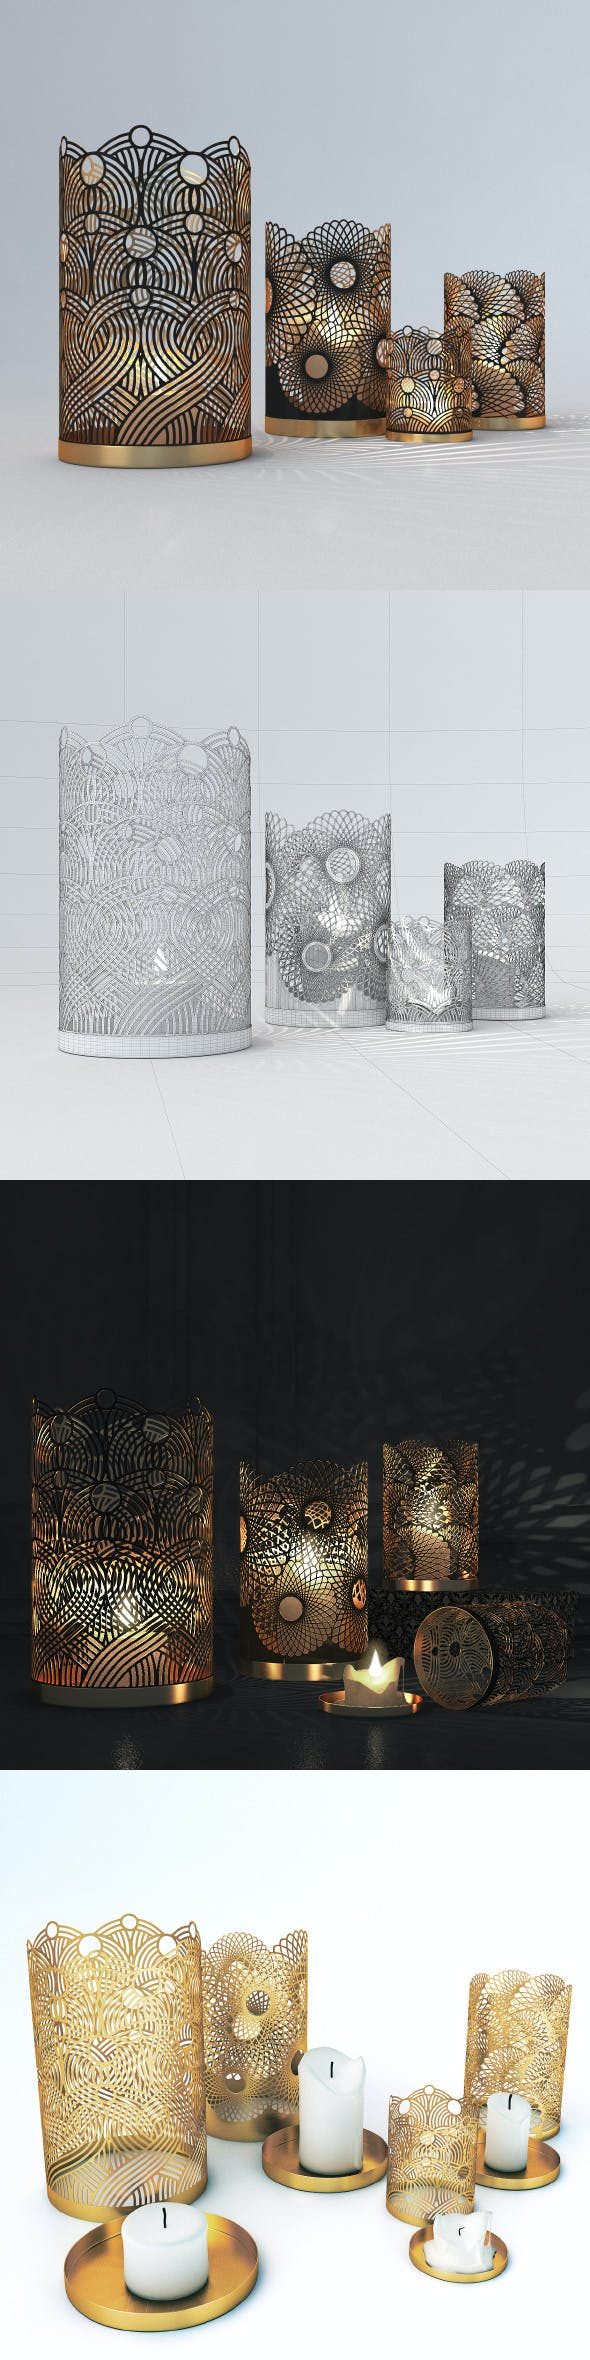 Decorative Openwork Candle Holders - 3DOcean Item for Sale